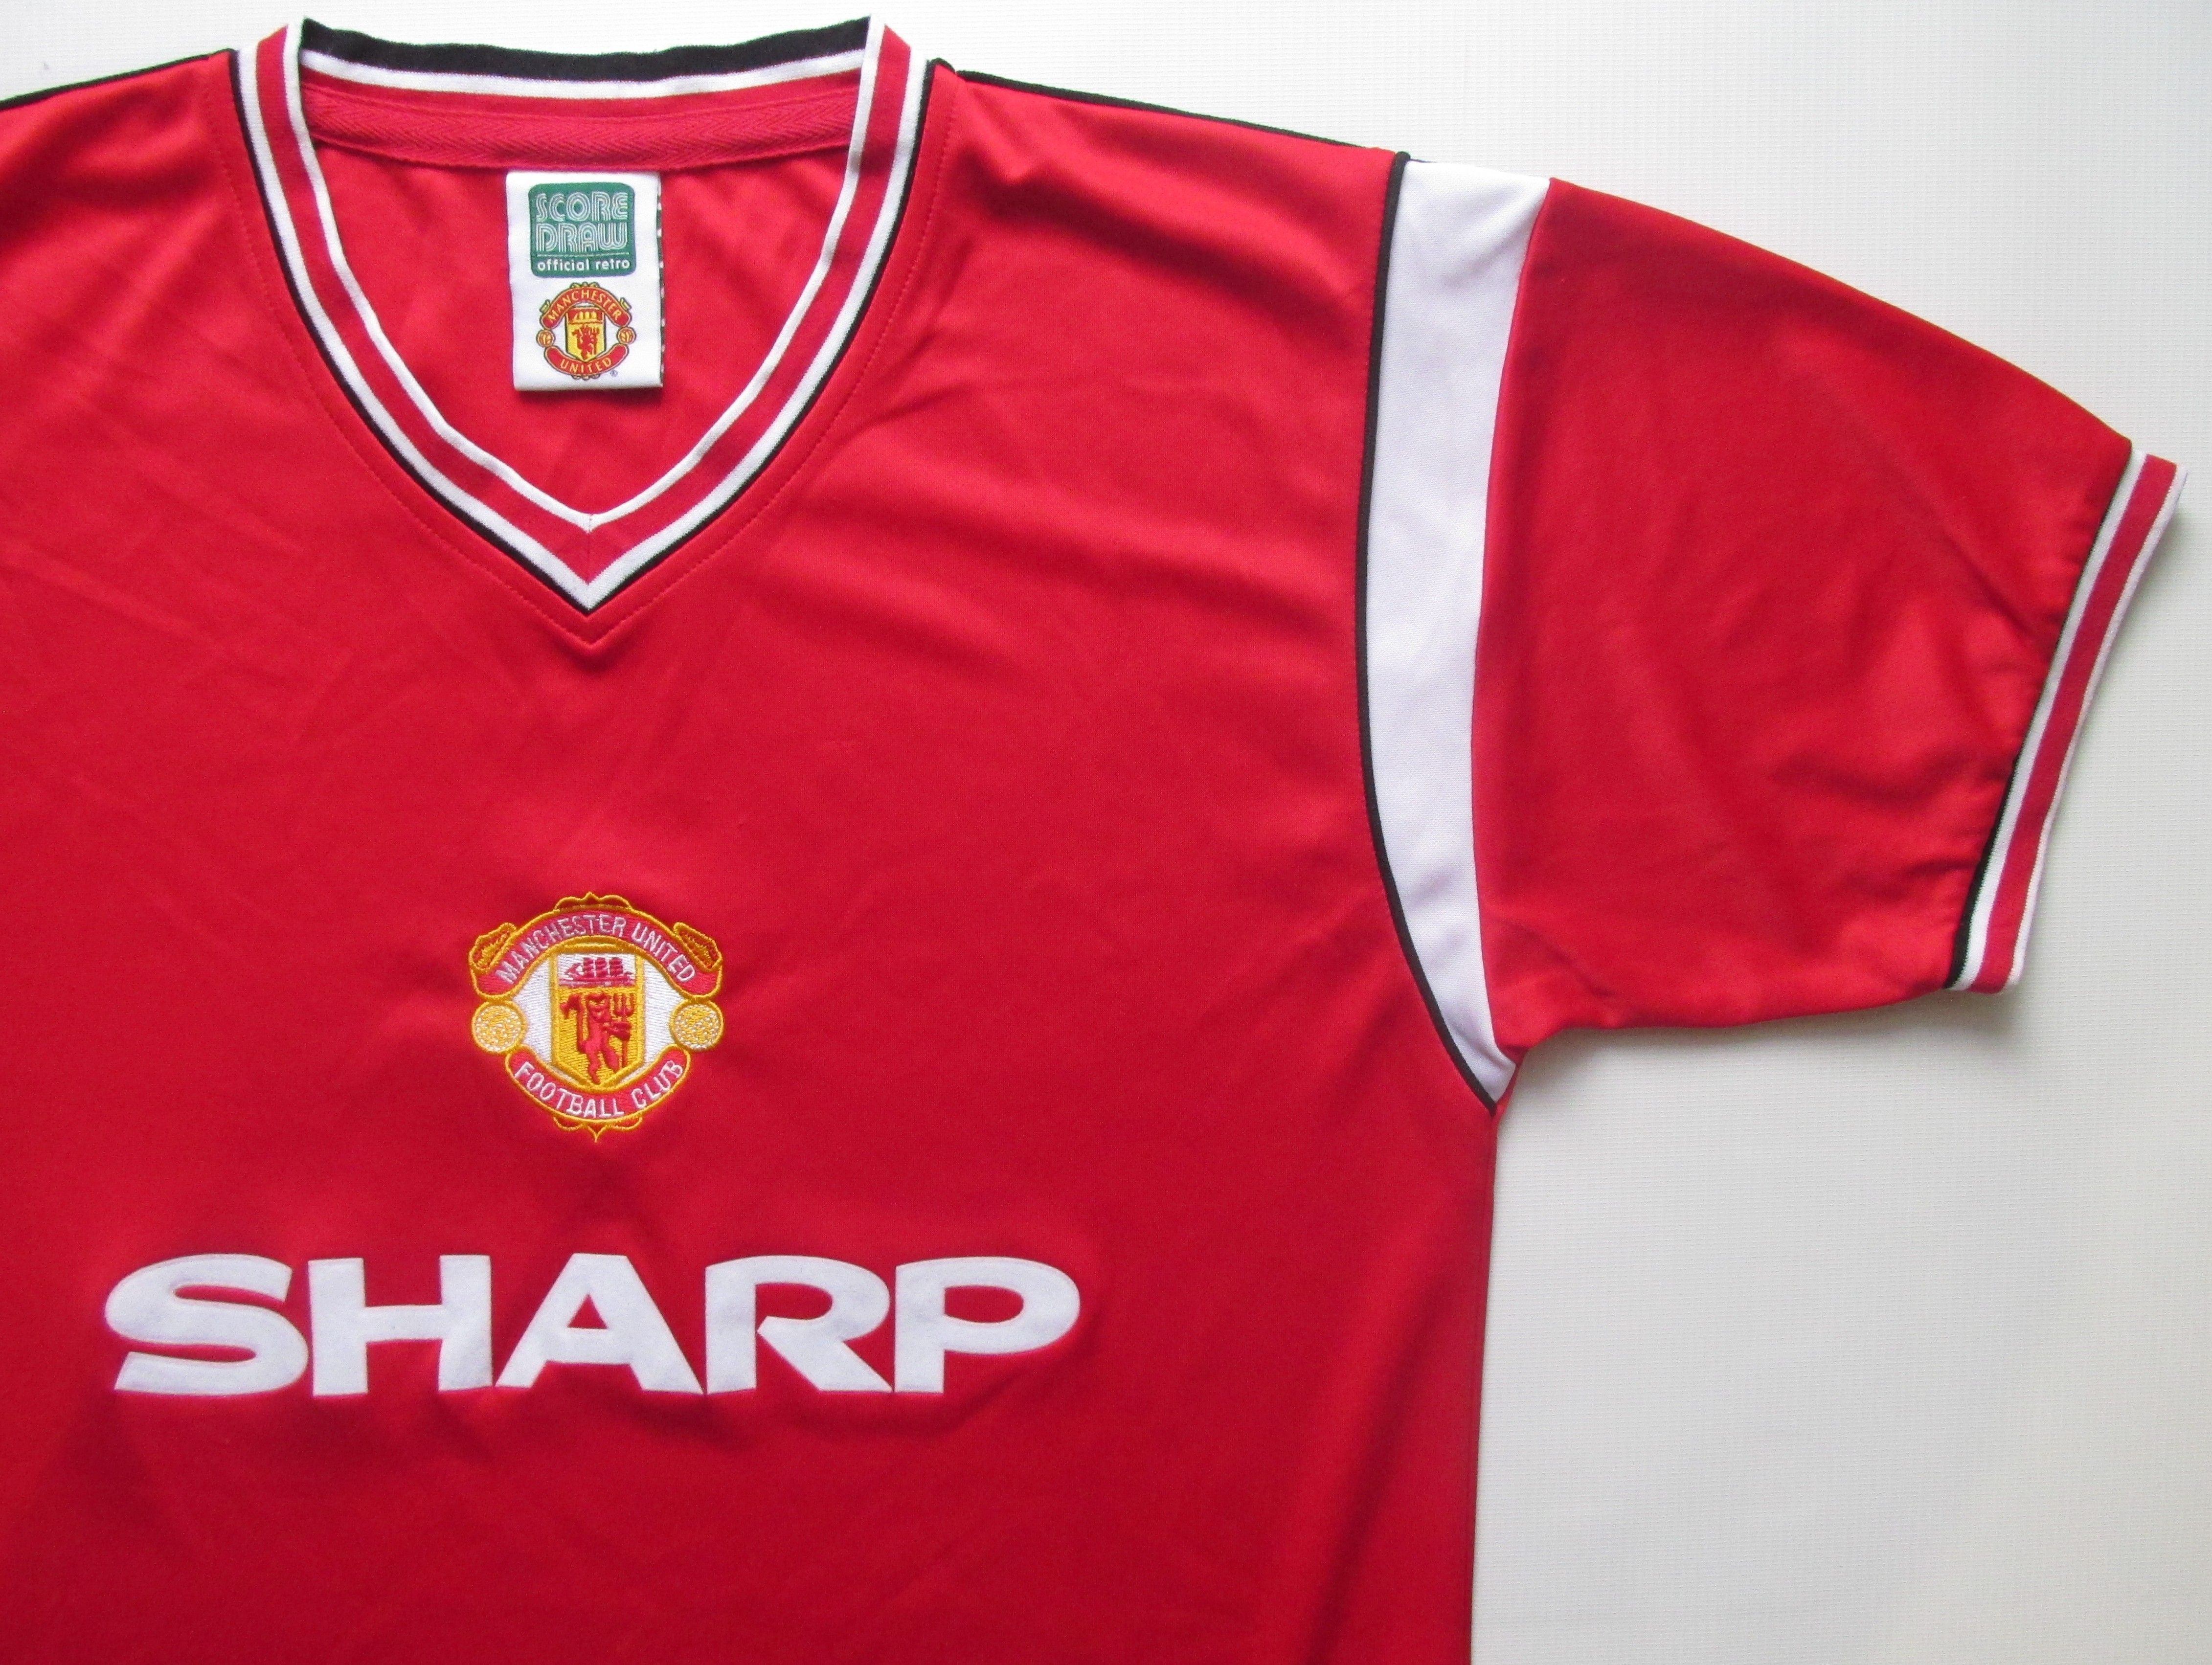 Manchester United 1984 1986 Home Retro Replica Football Shirt By Score Draw Mufc Manunited Reddevils Vintage Football Shirts Football Shirts Soccer Jersey